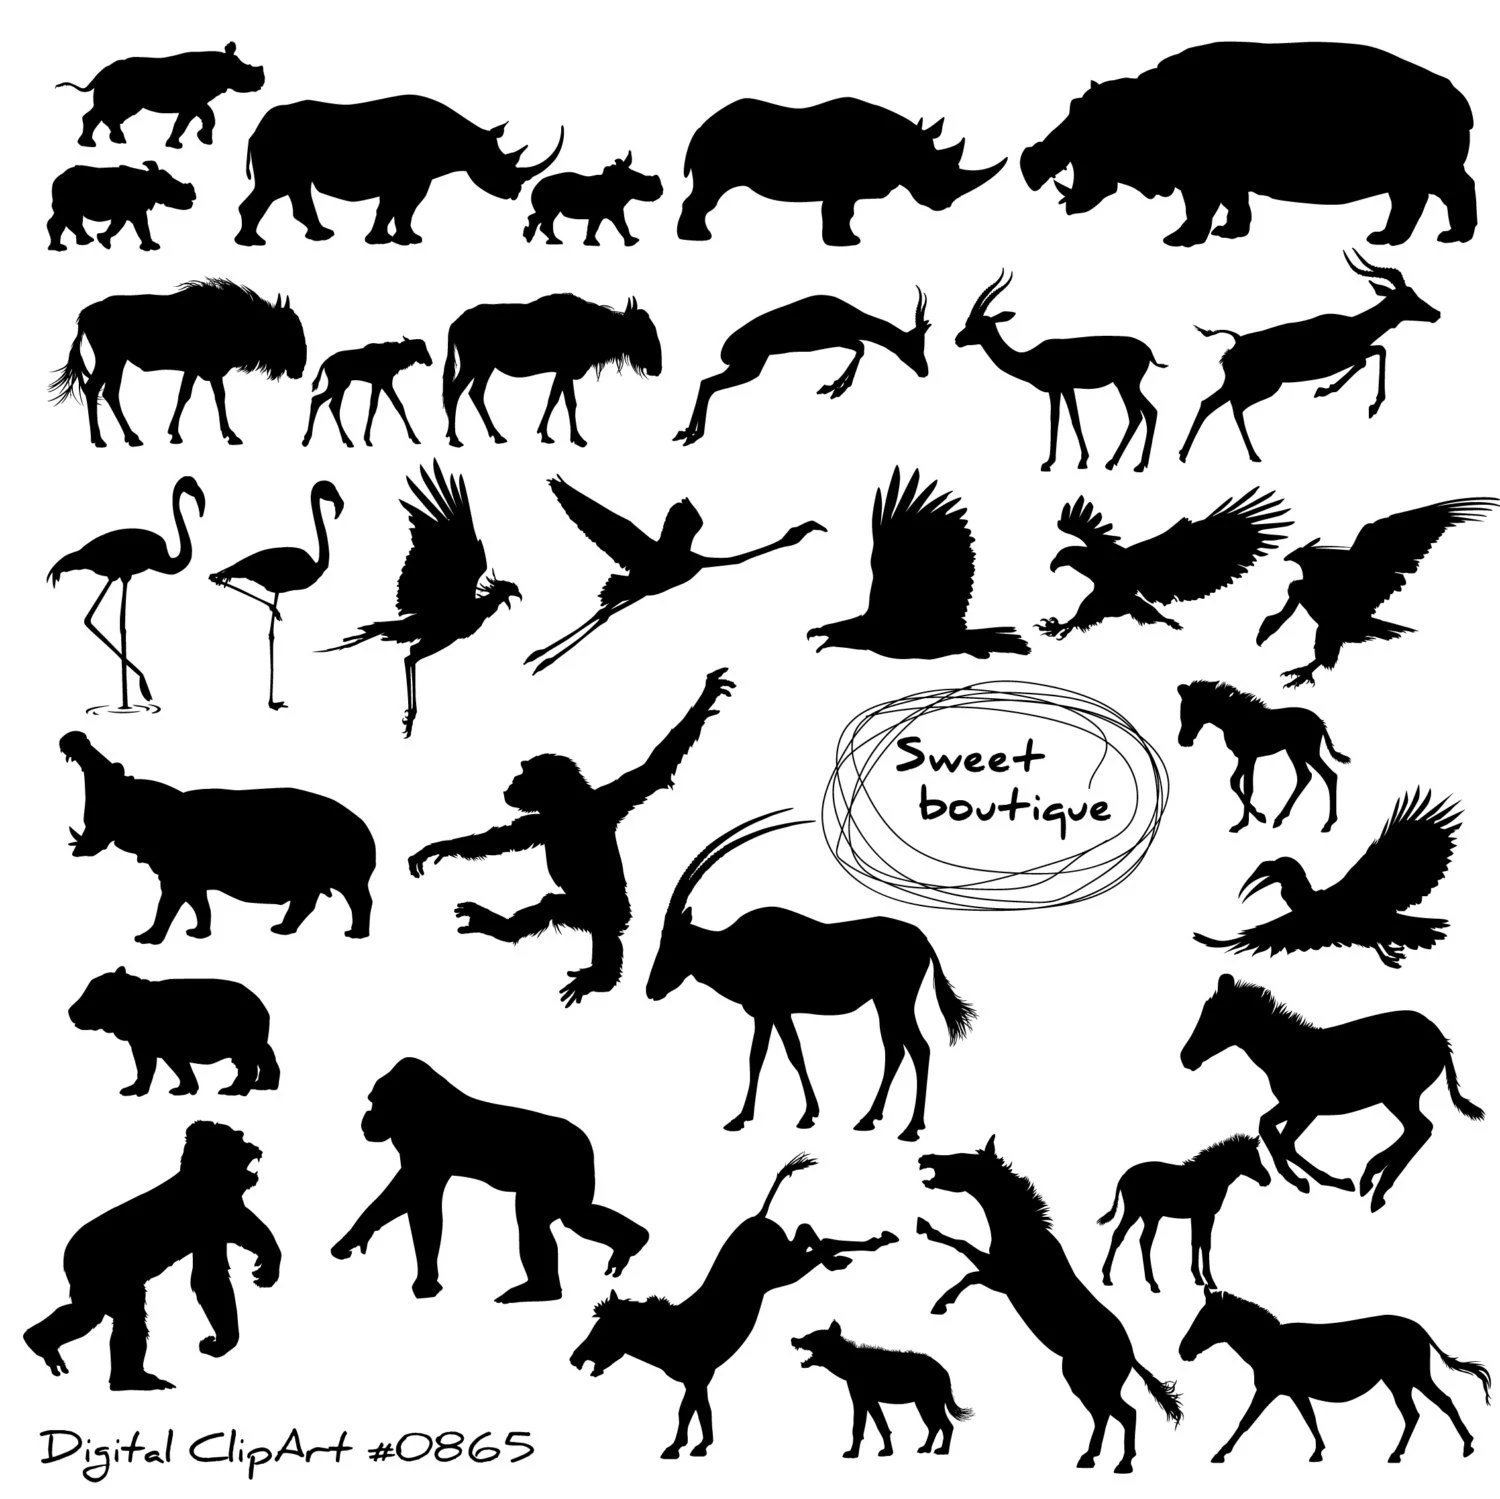 hight resolution of wild animal silhouettes clipart silhouettes clipart clip art animal silhouette clip art monkey animal digital silhouettes clip art 0865